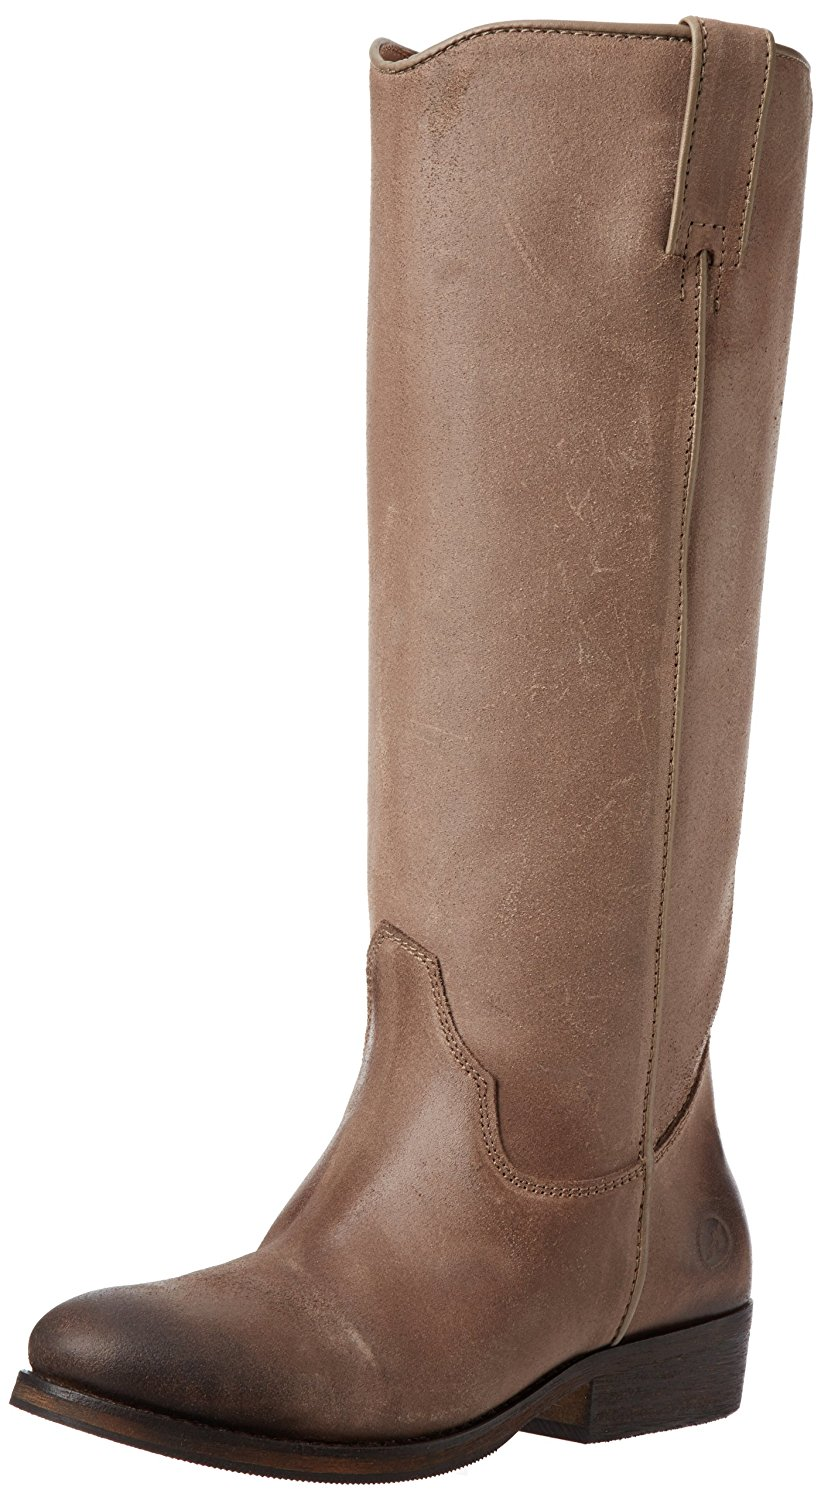 Diba True Women's Bronx Tam Mee Tall Leather Boots Taupe Rockleat (40.0 EU   10.0M US) by